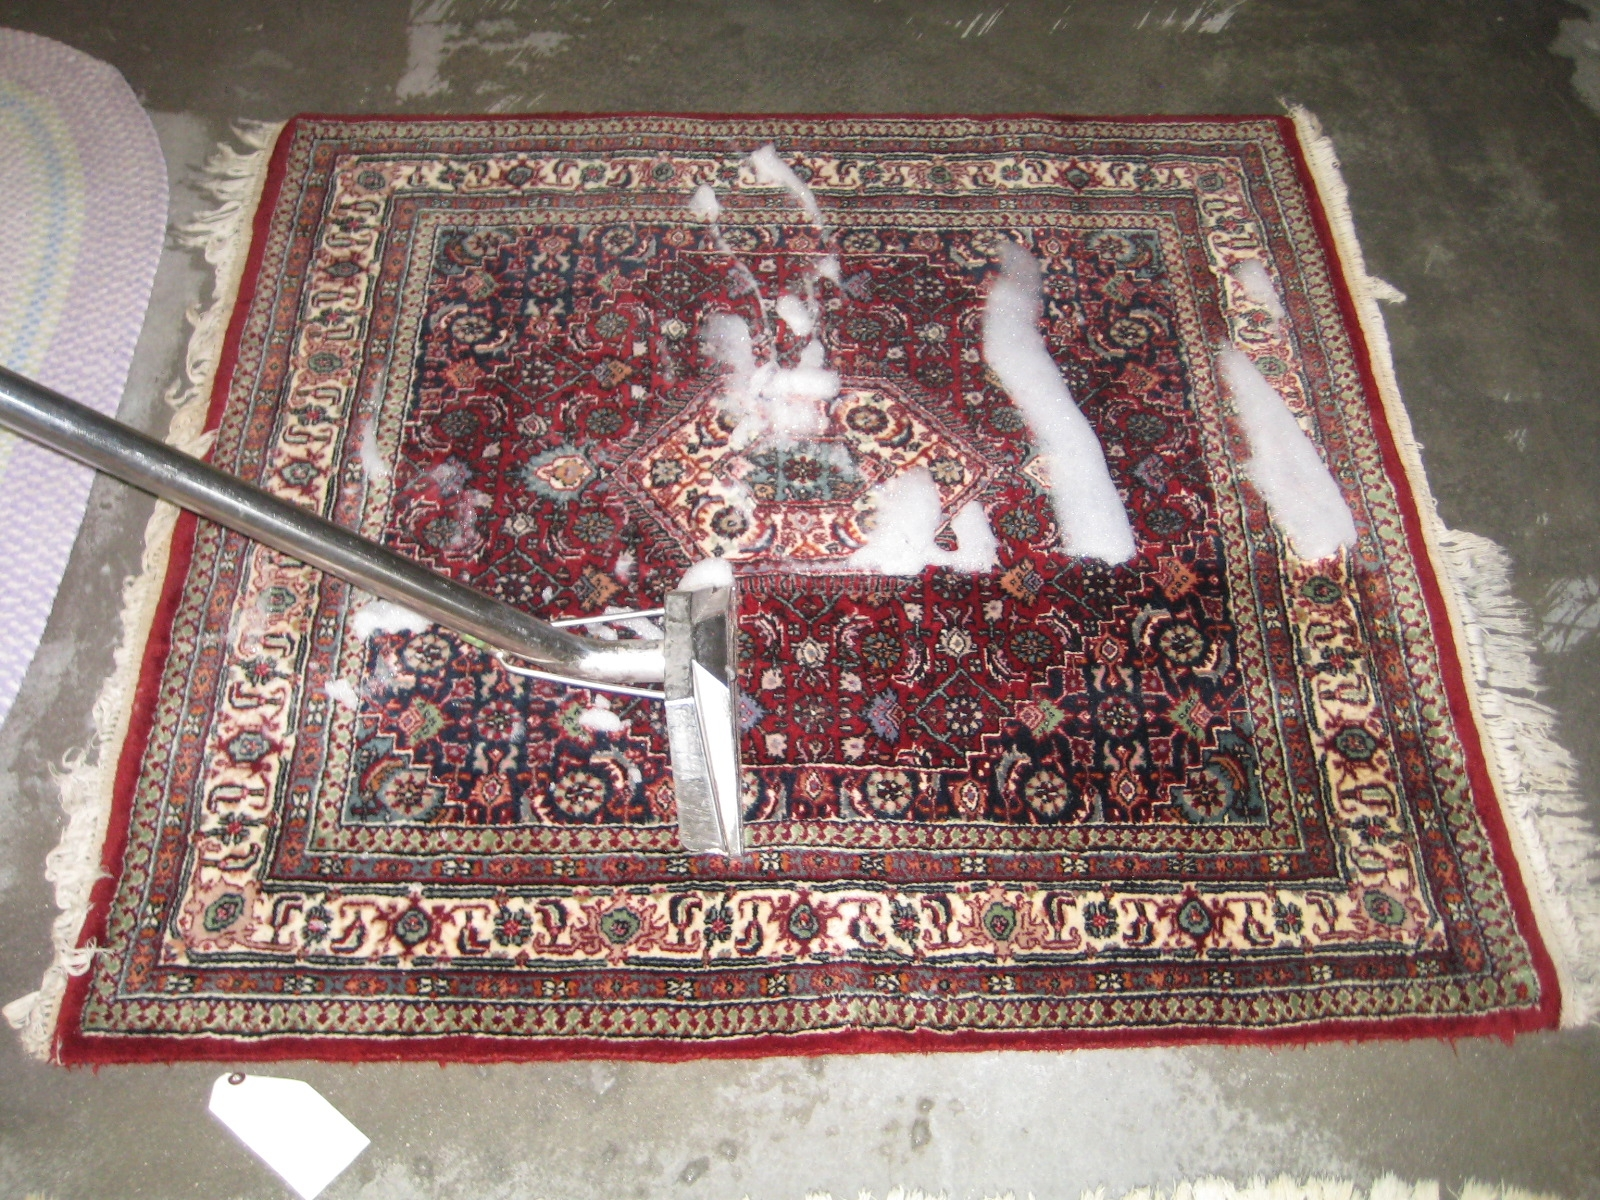 Professional Hand Wash Rug Cleaning And Area Dry Services